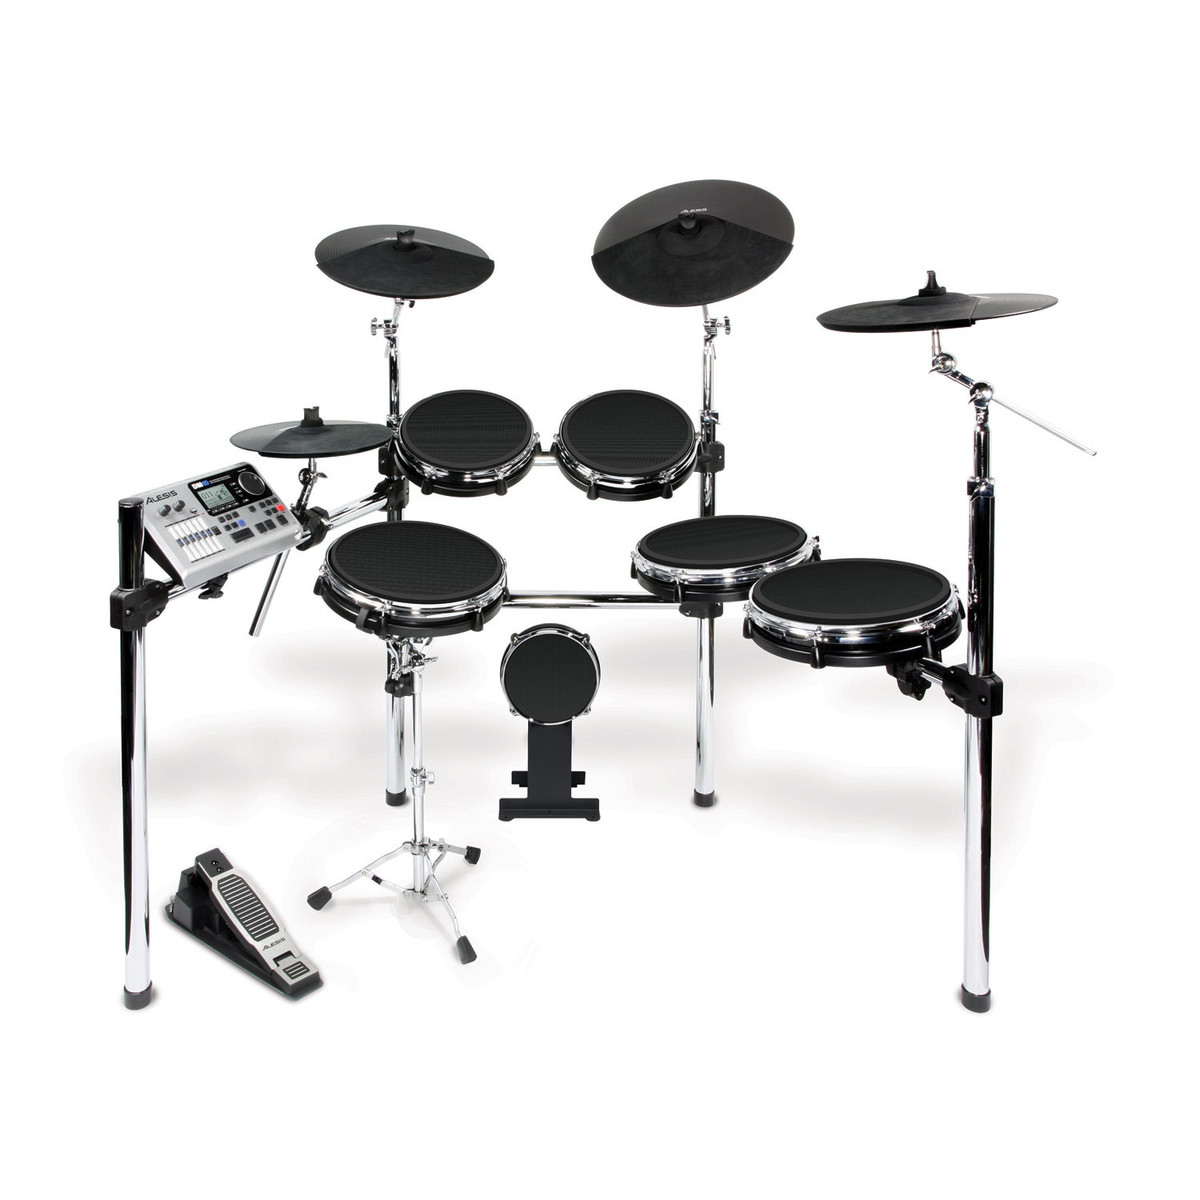 Alesis DM10 Studio Kit Mesh Digital Drum Kit